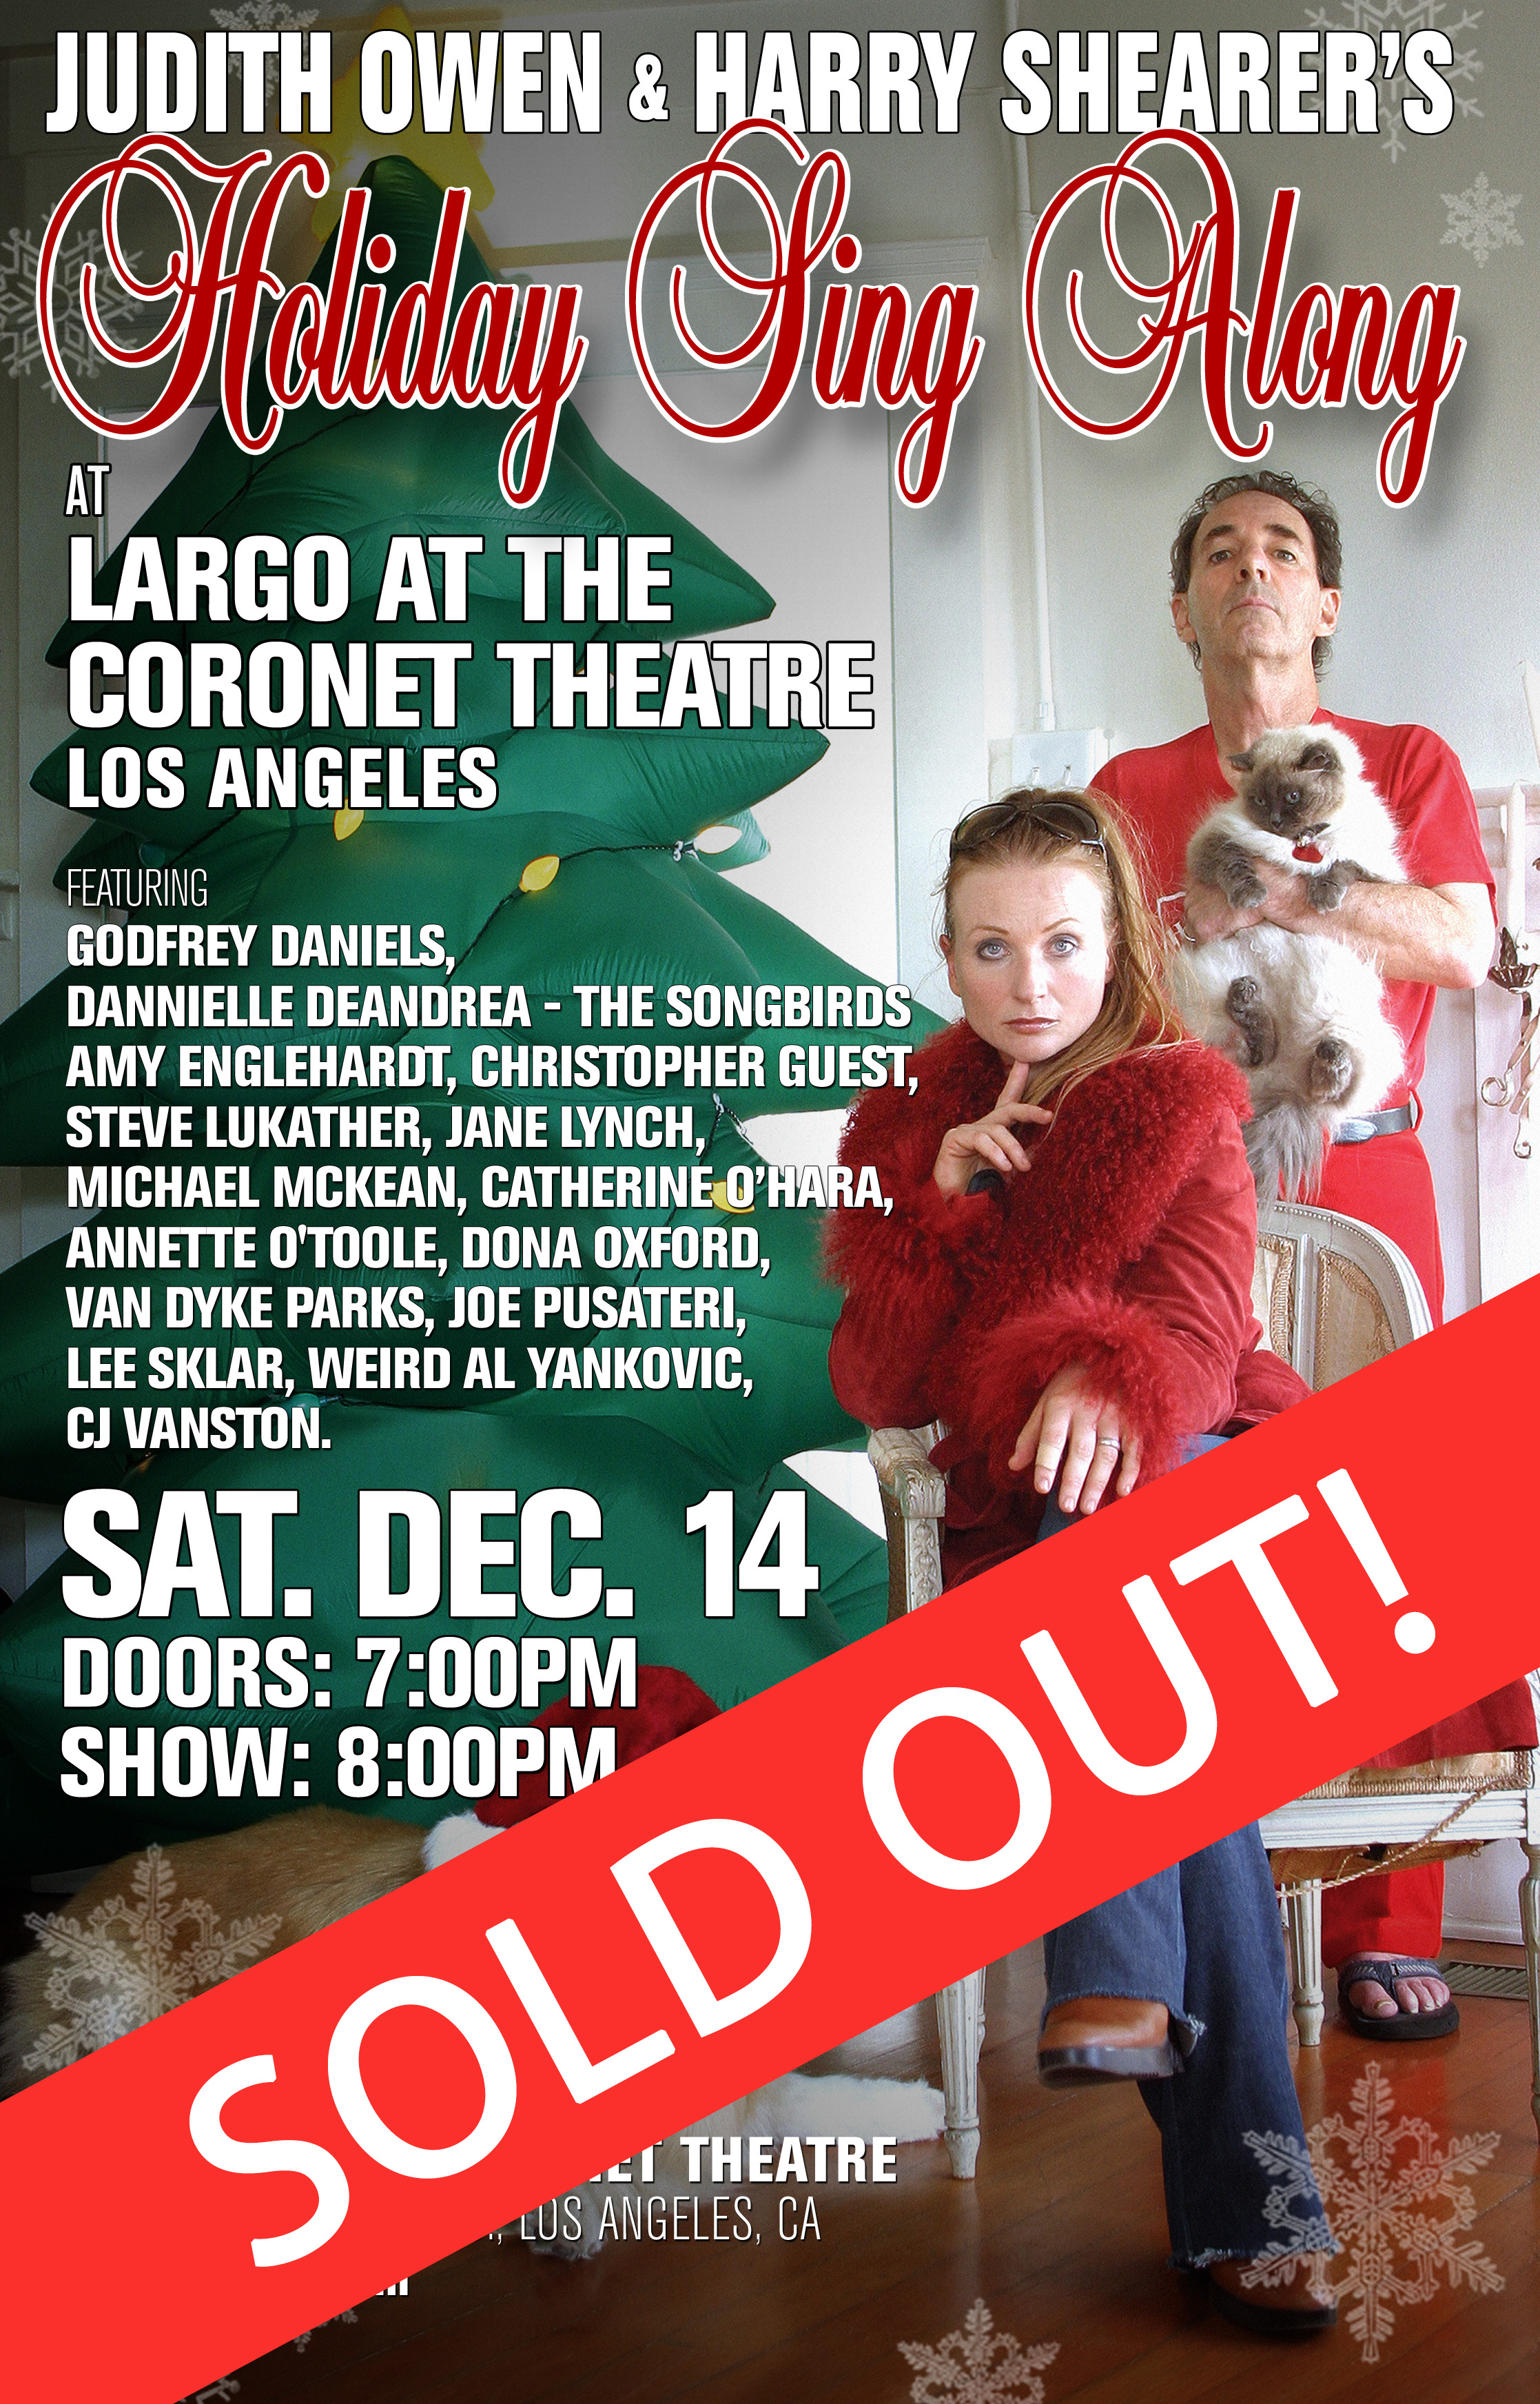 Judith Owen & Harry Shearer Holiday Sing Along - Chicago, December 2, 2013